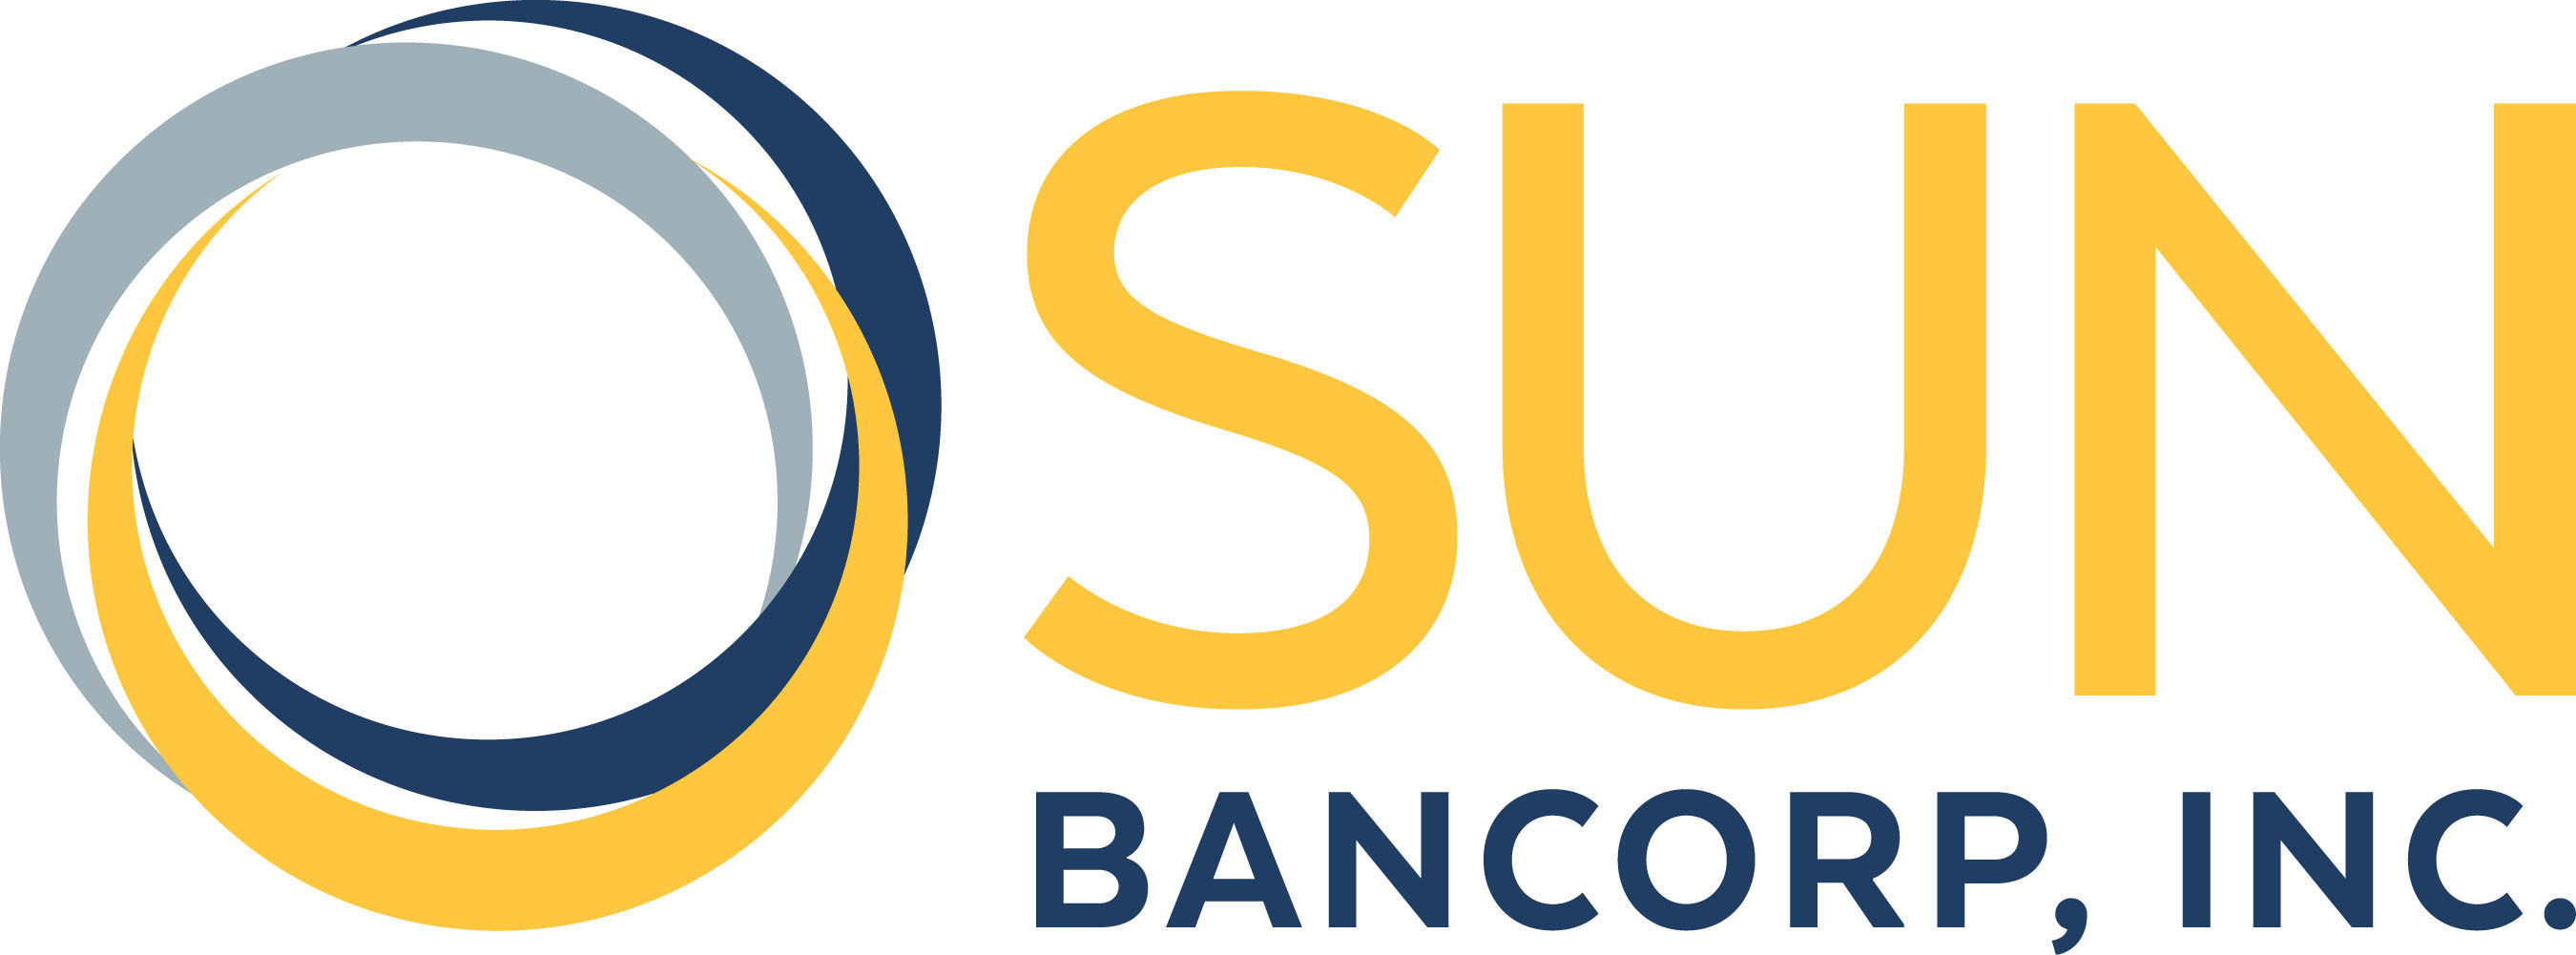 Sun Bancorp Inc Announces Termination Of Formal Agreement With The